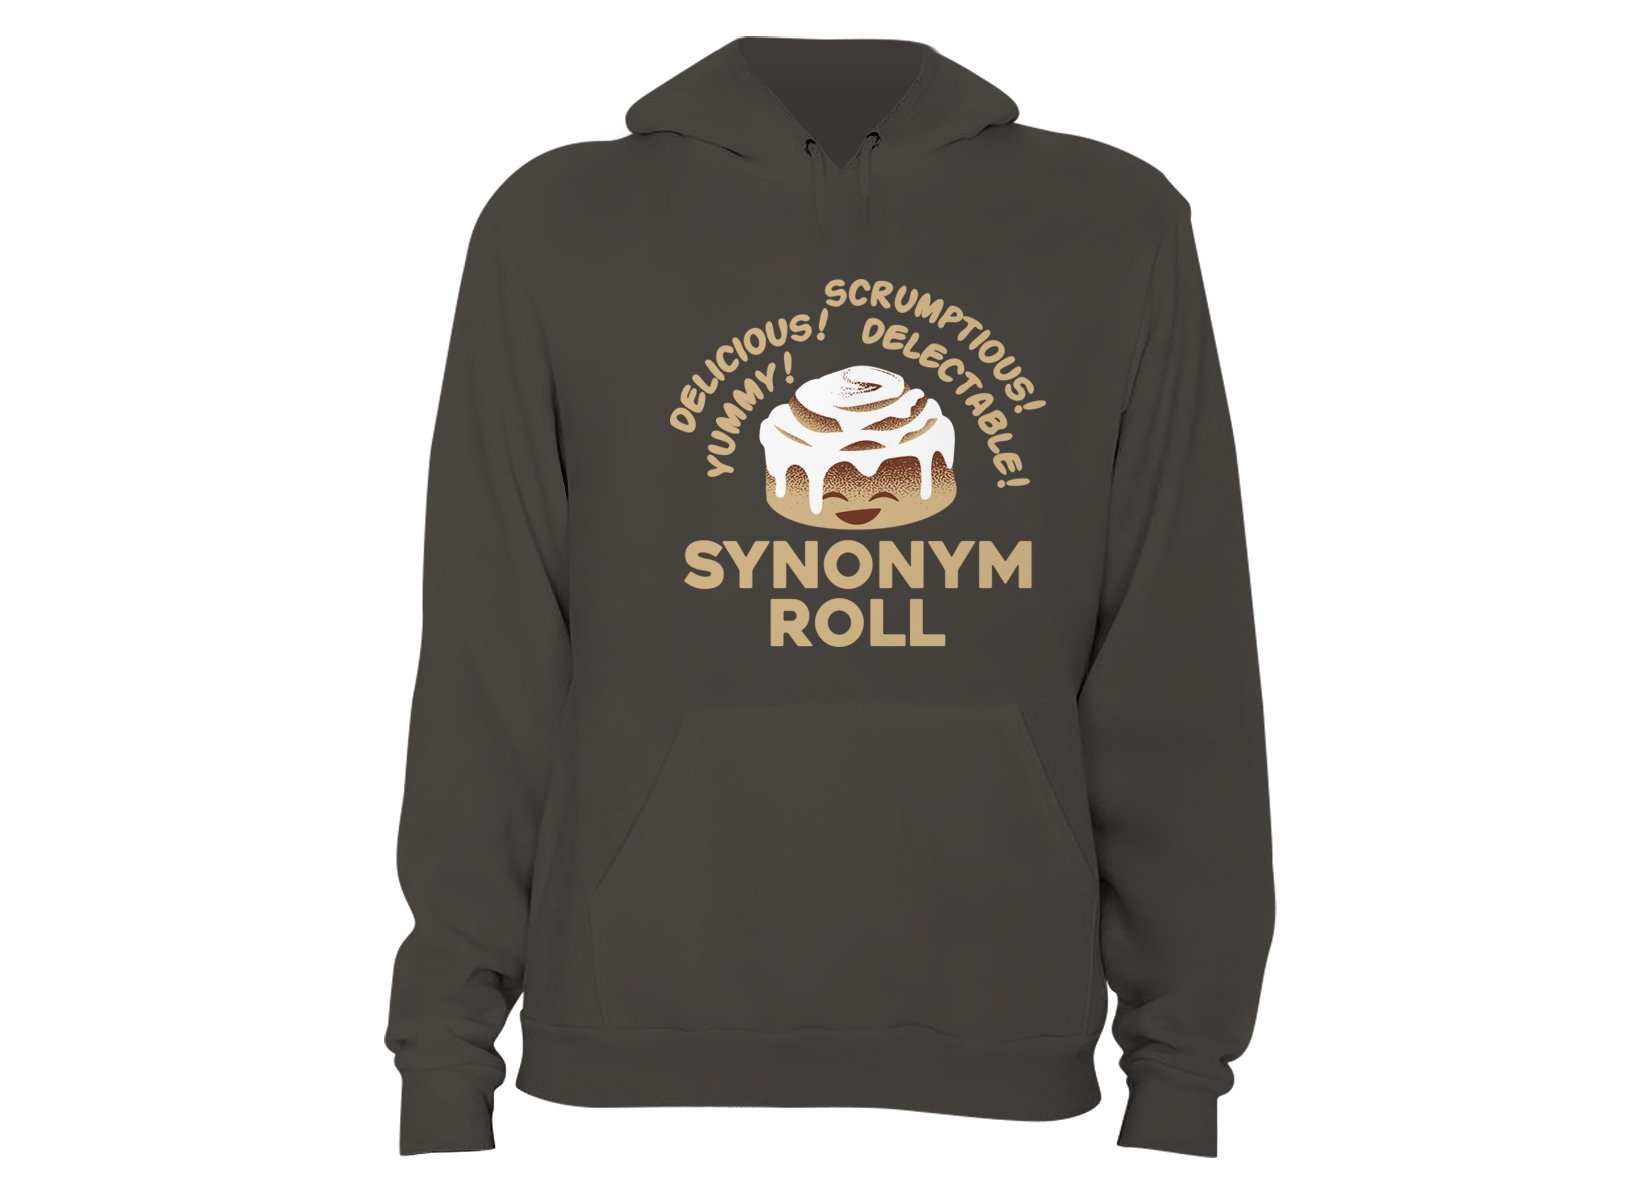 Synonym Roll on Hoodie